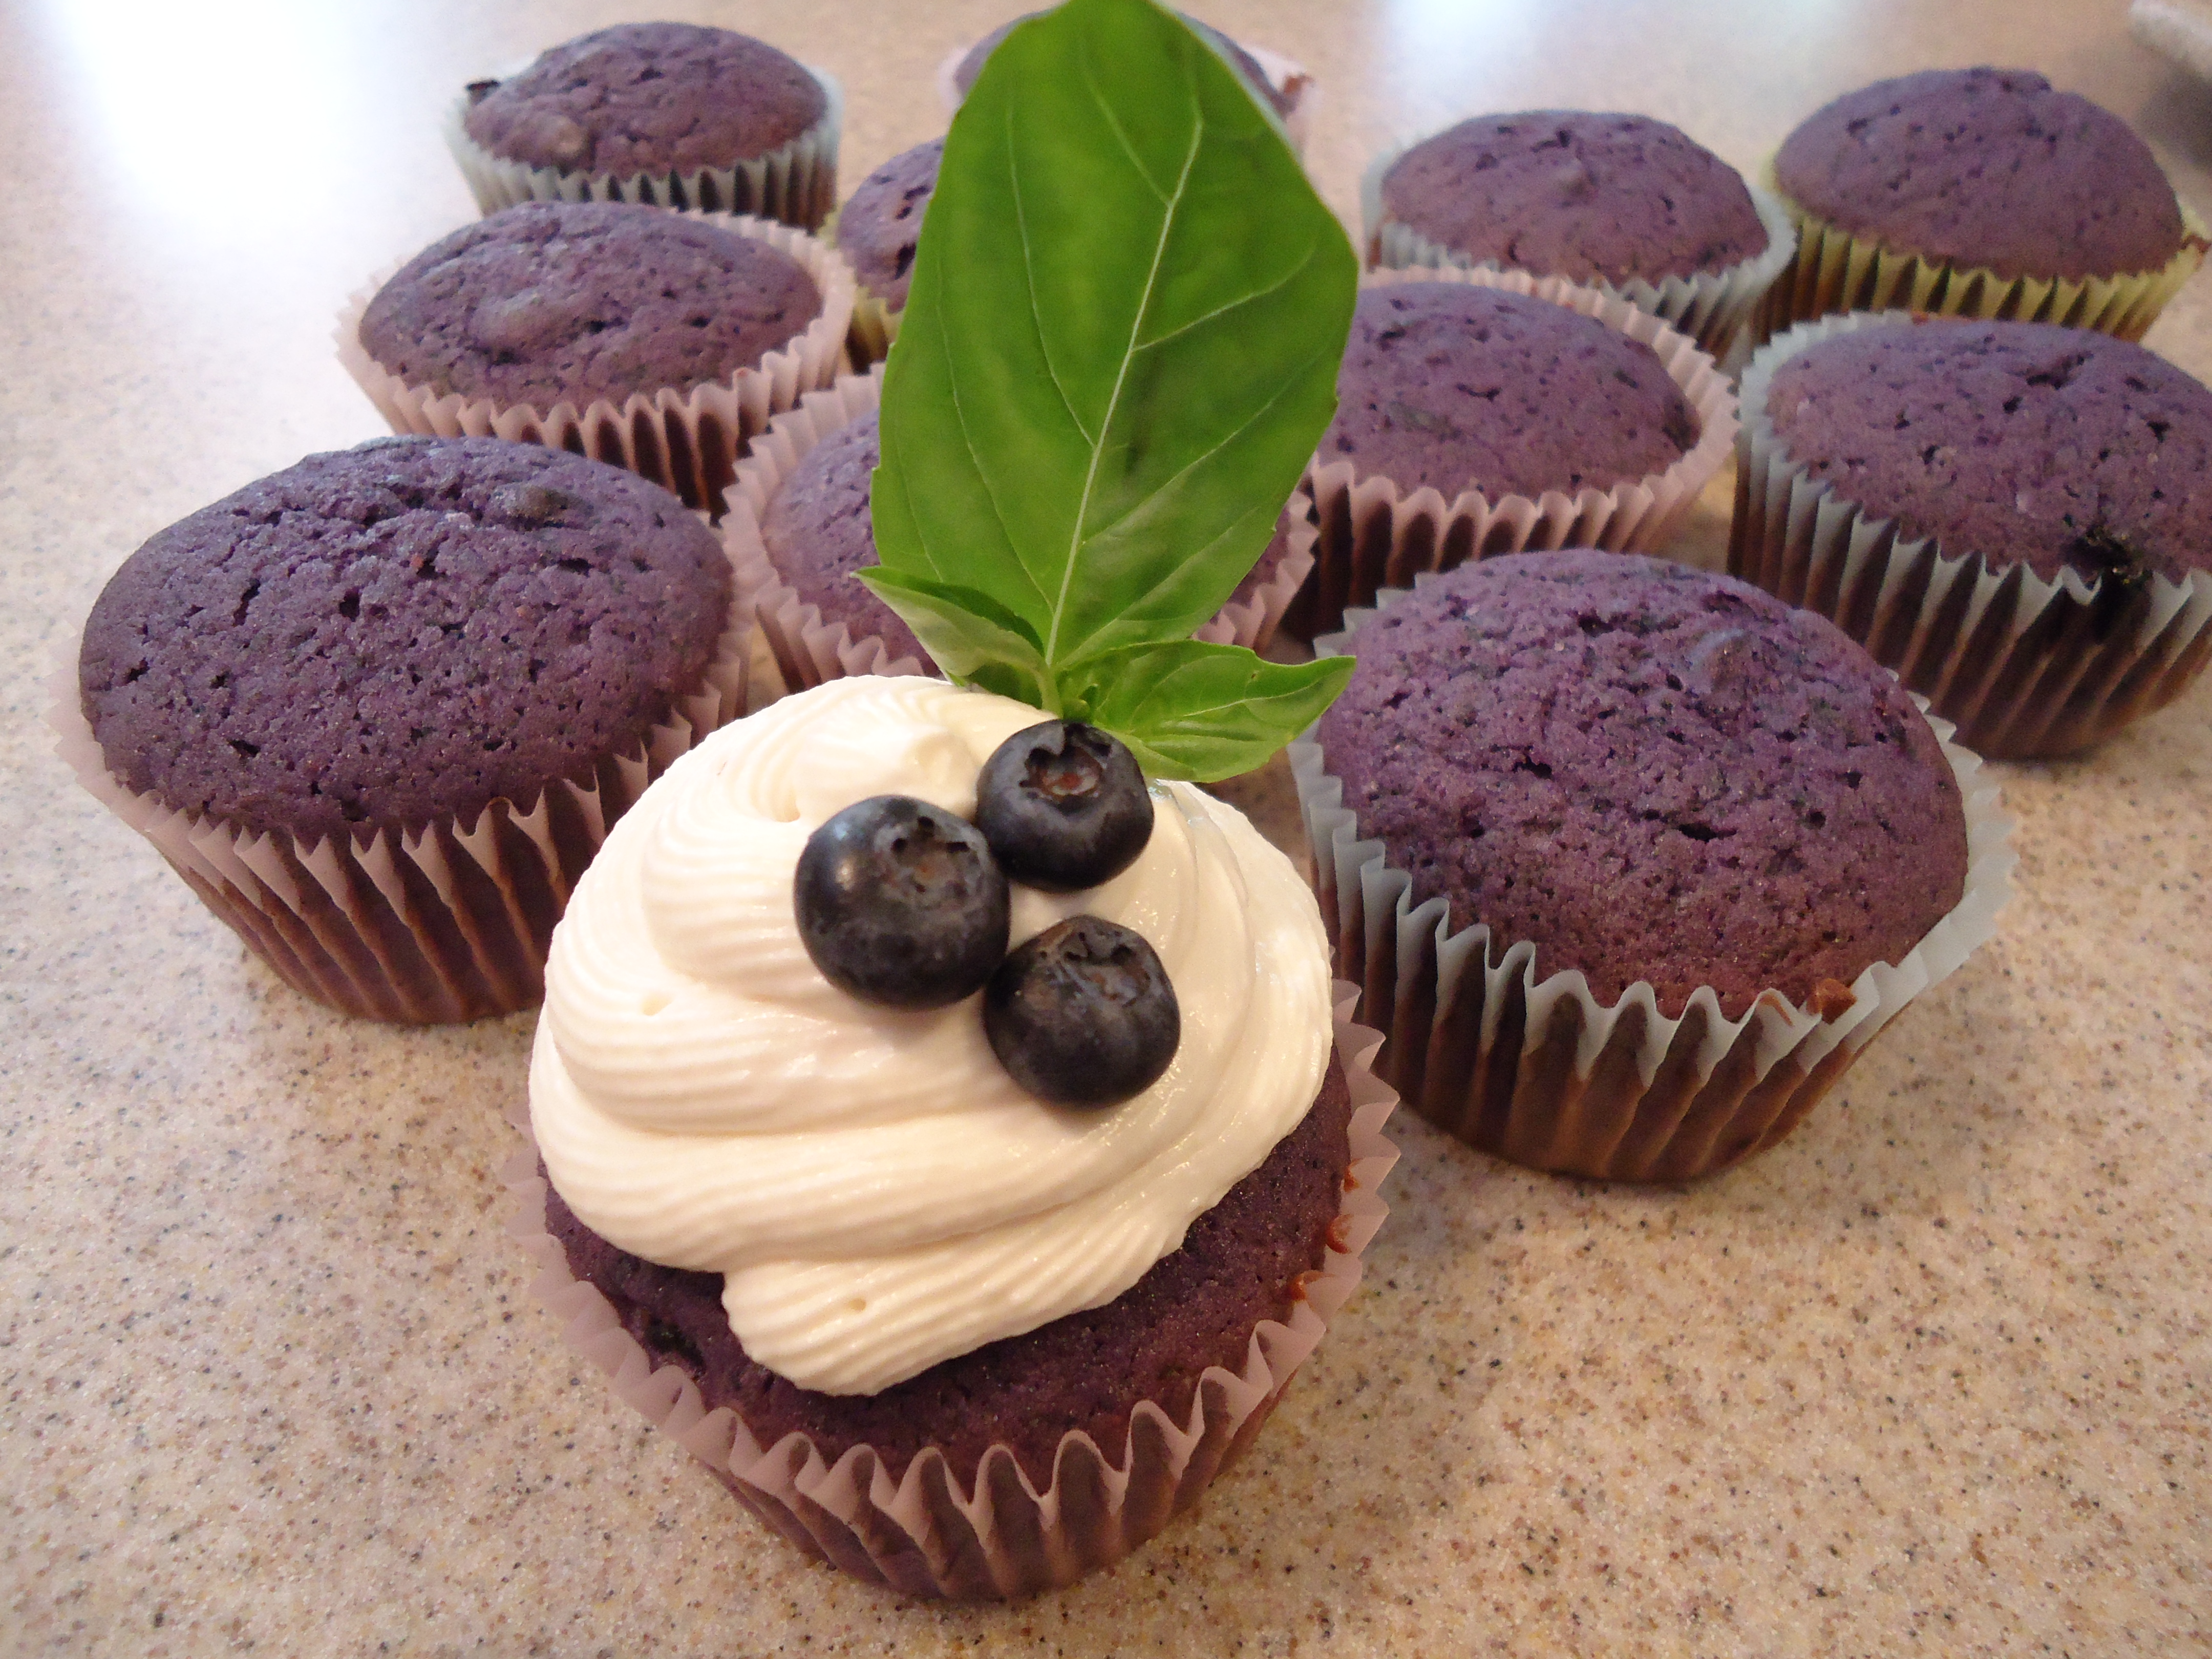 Roasted Blueberry Cupcake with Basil Infused Goat Cheese Frosting